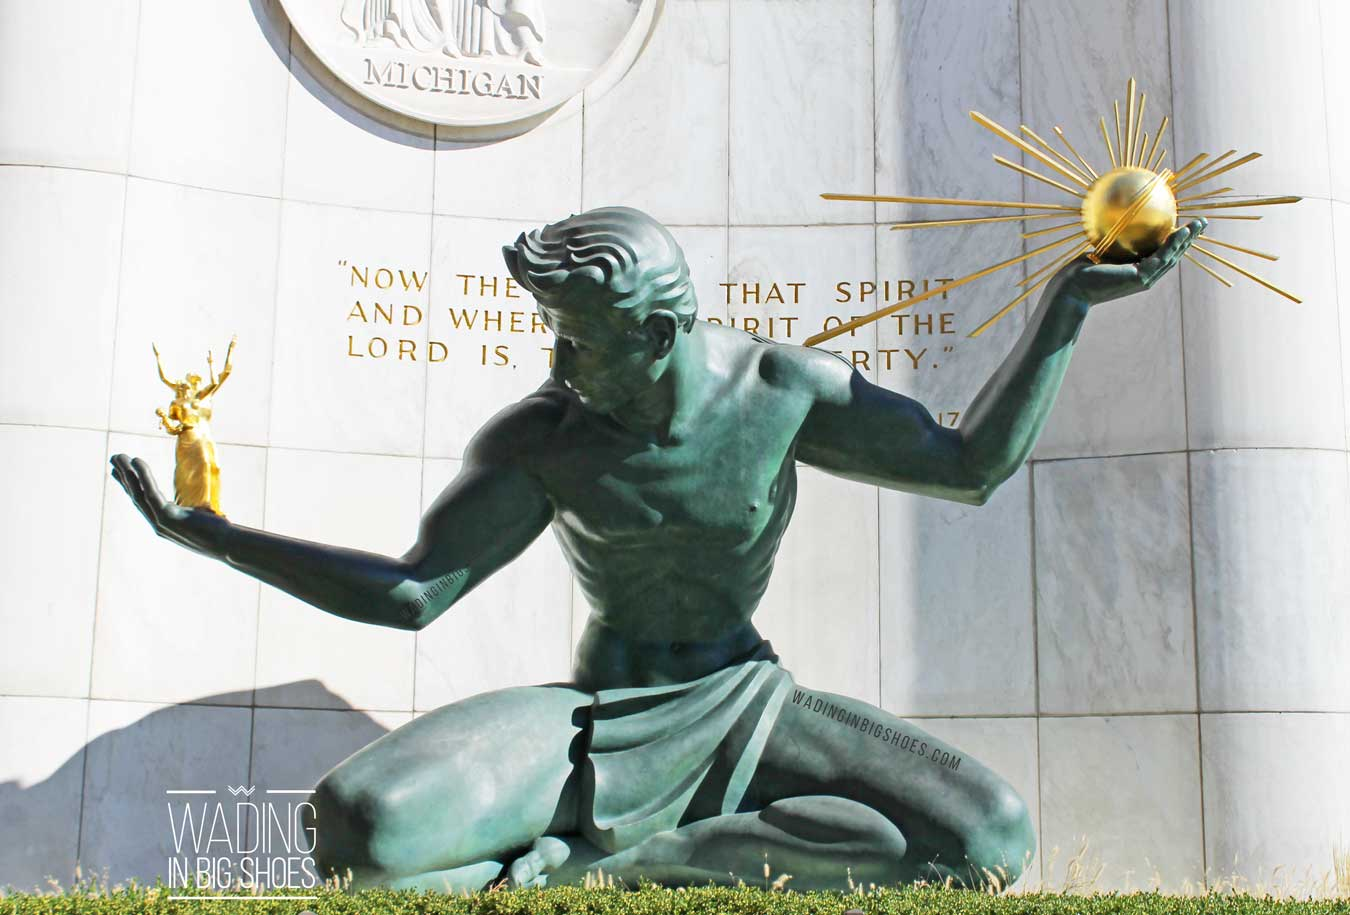 Things To Do In Detroit: Visit The Spirit Of Detroit Statue // (via Wading in Big Shoes) // Don't miss The Spirit of Detroit, located on Woodward Avenue in downtown Detroit. Commissioned in 1955, this bronze and marble statue is in front of the Coleman A. Young Center and makes a great backdrop for Detroit photos.